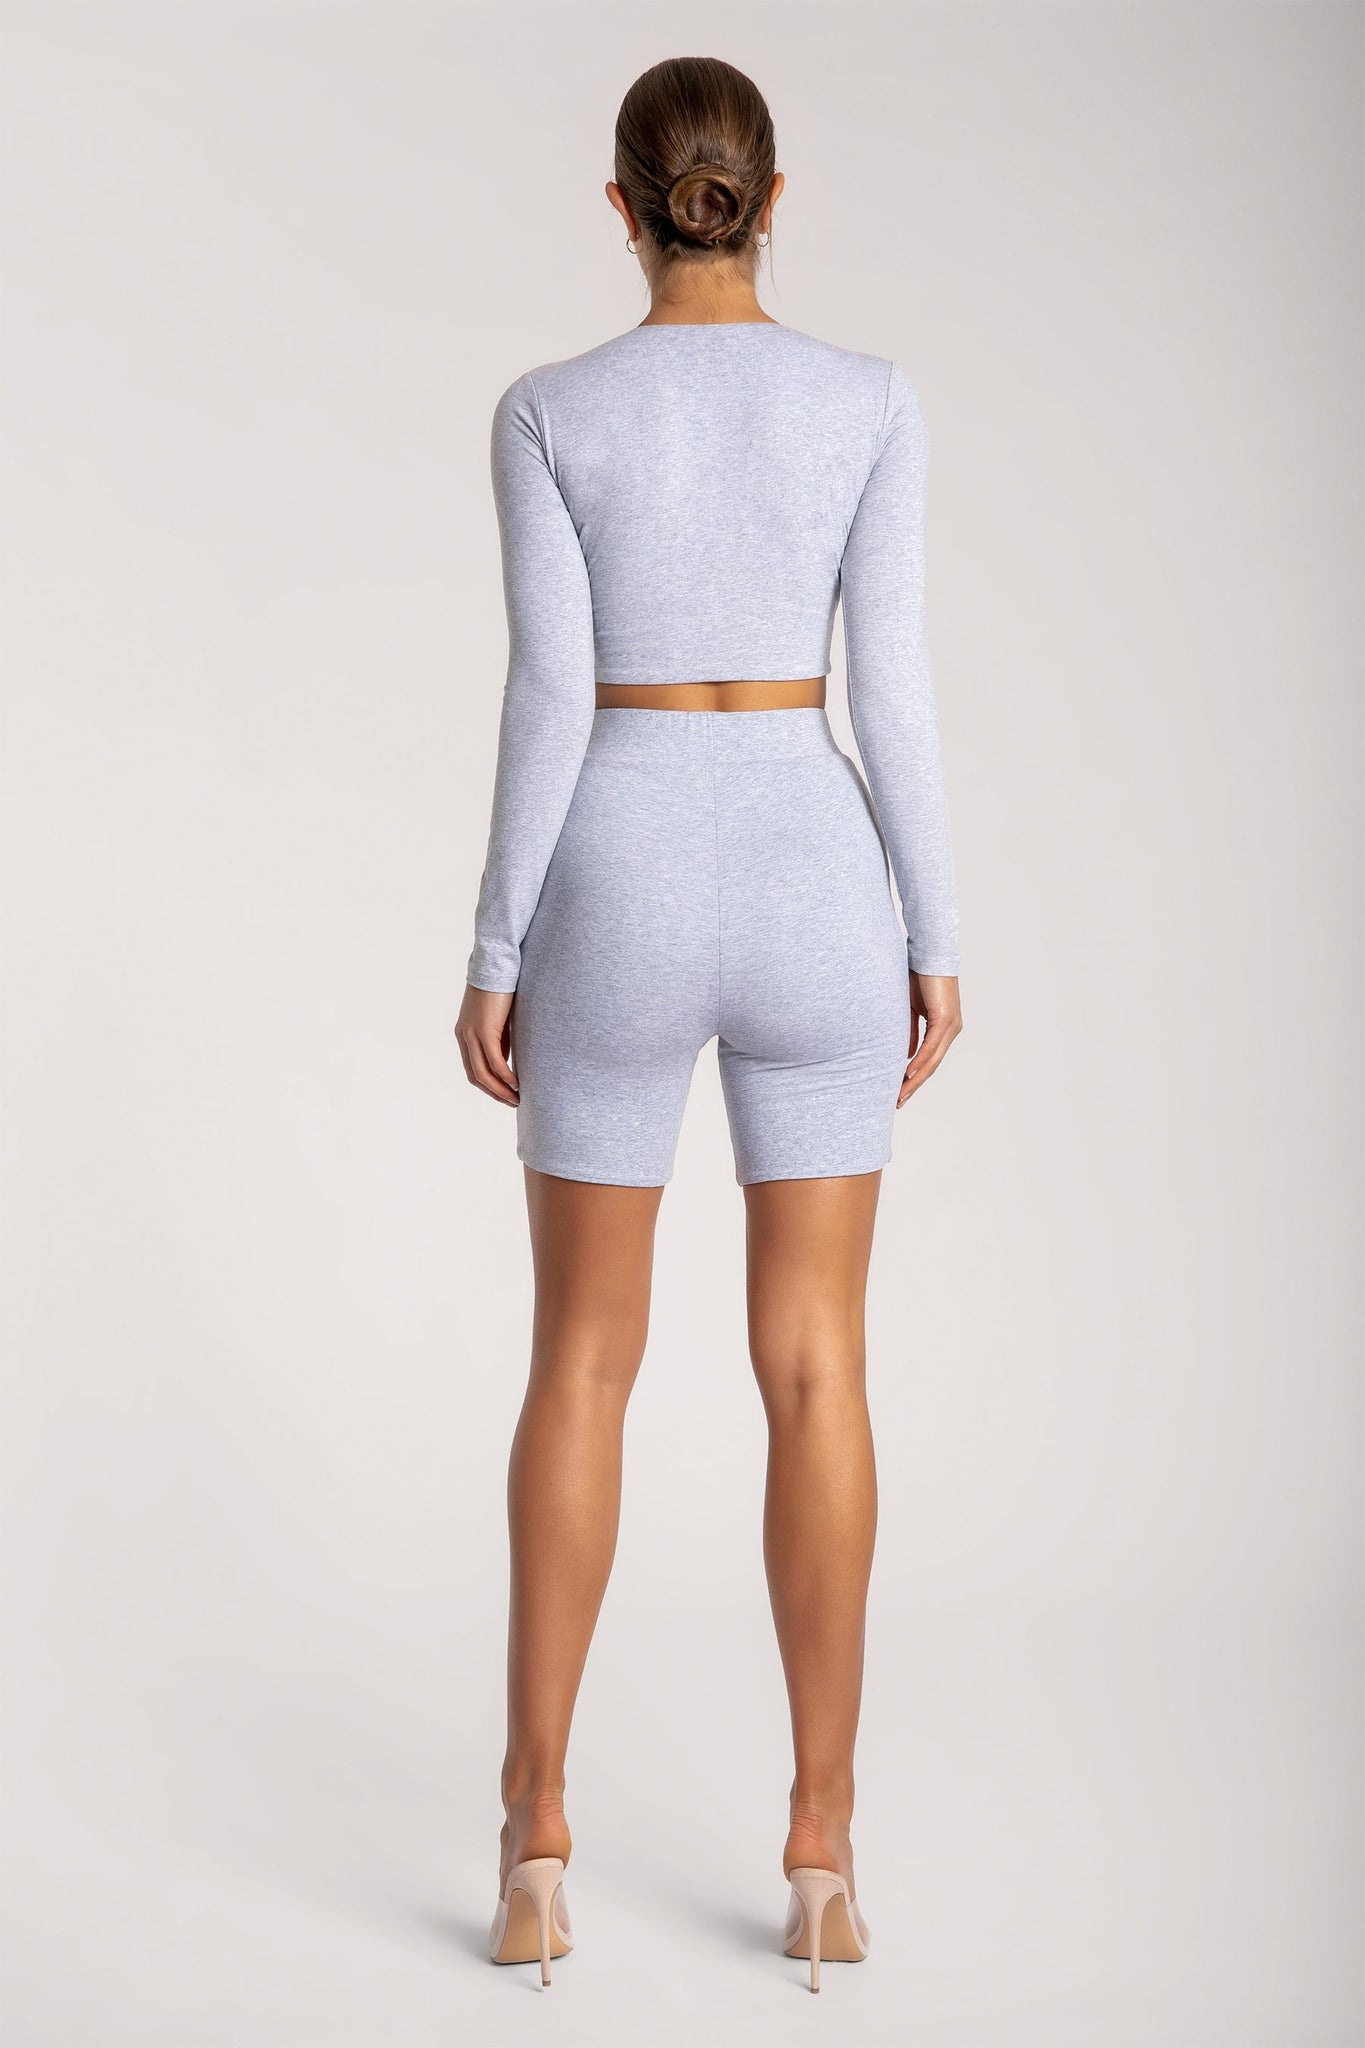 Cameryn High Waisted Bike Short - Grey Marle - MESHKI